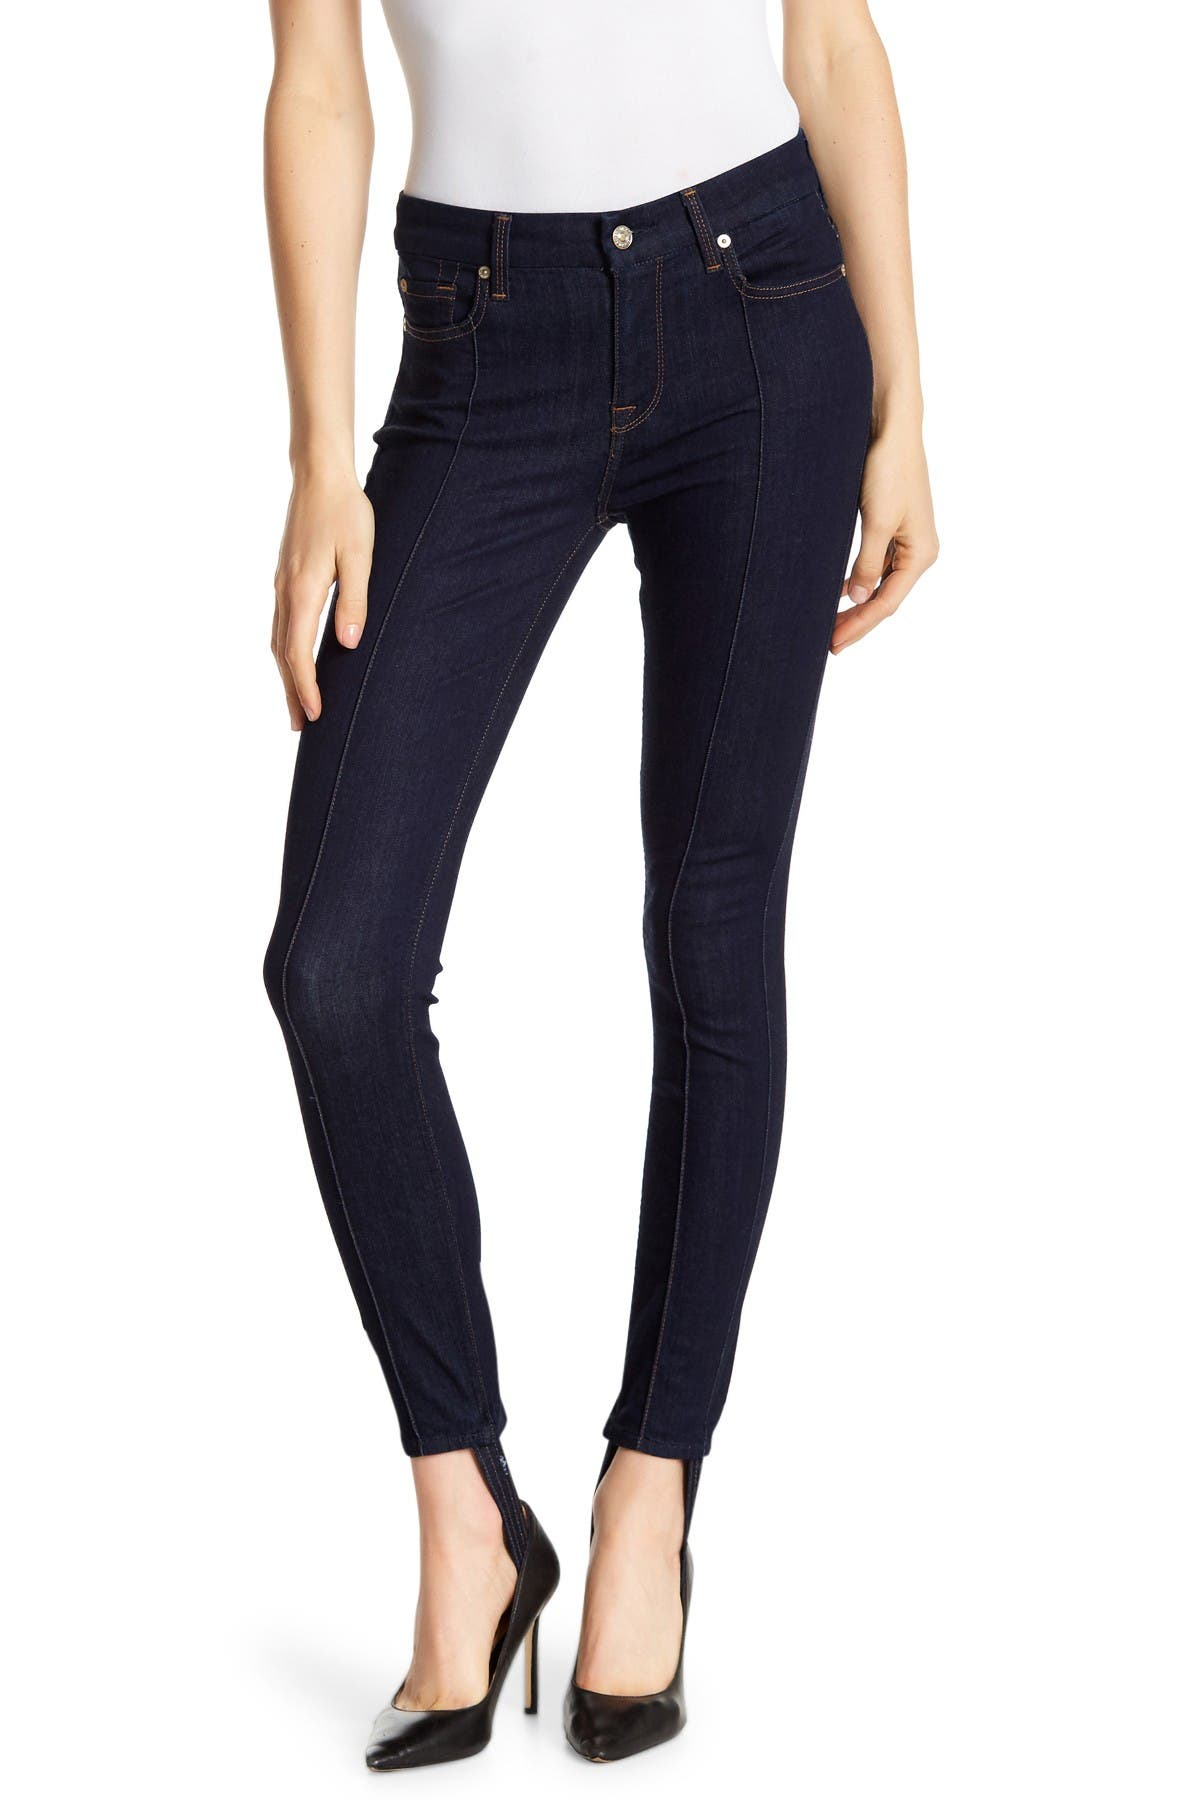 Image of 7 For All Mankind Ankle Skinny Stirrup Jeans